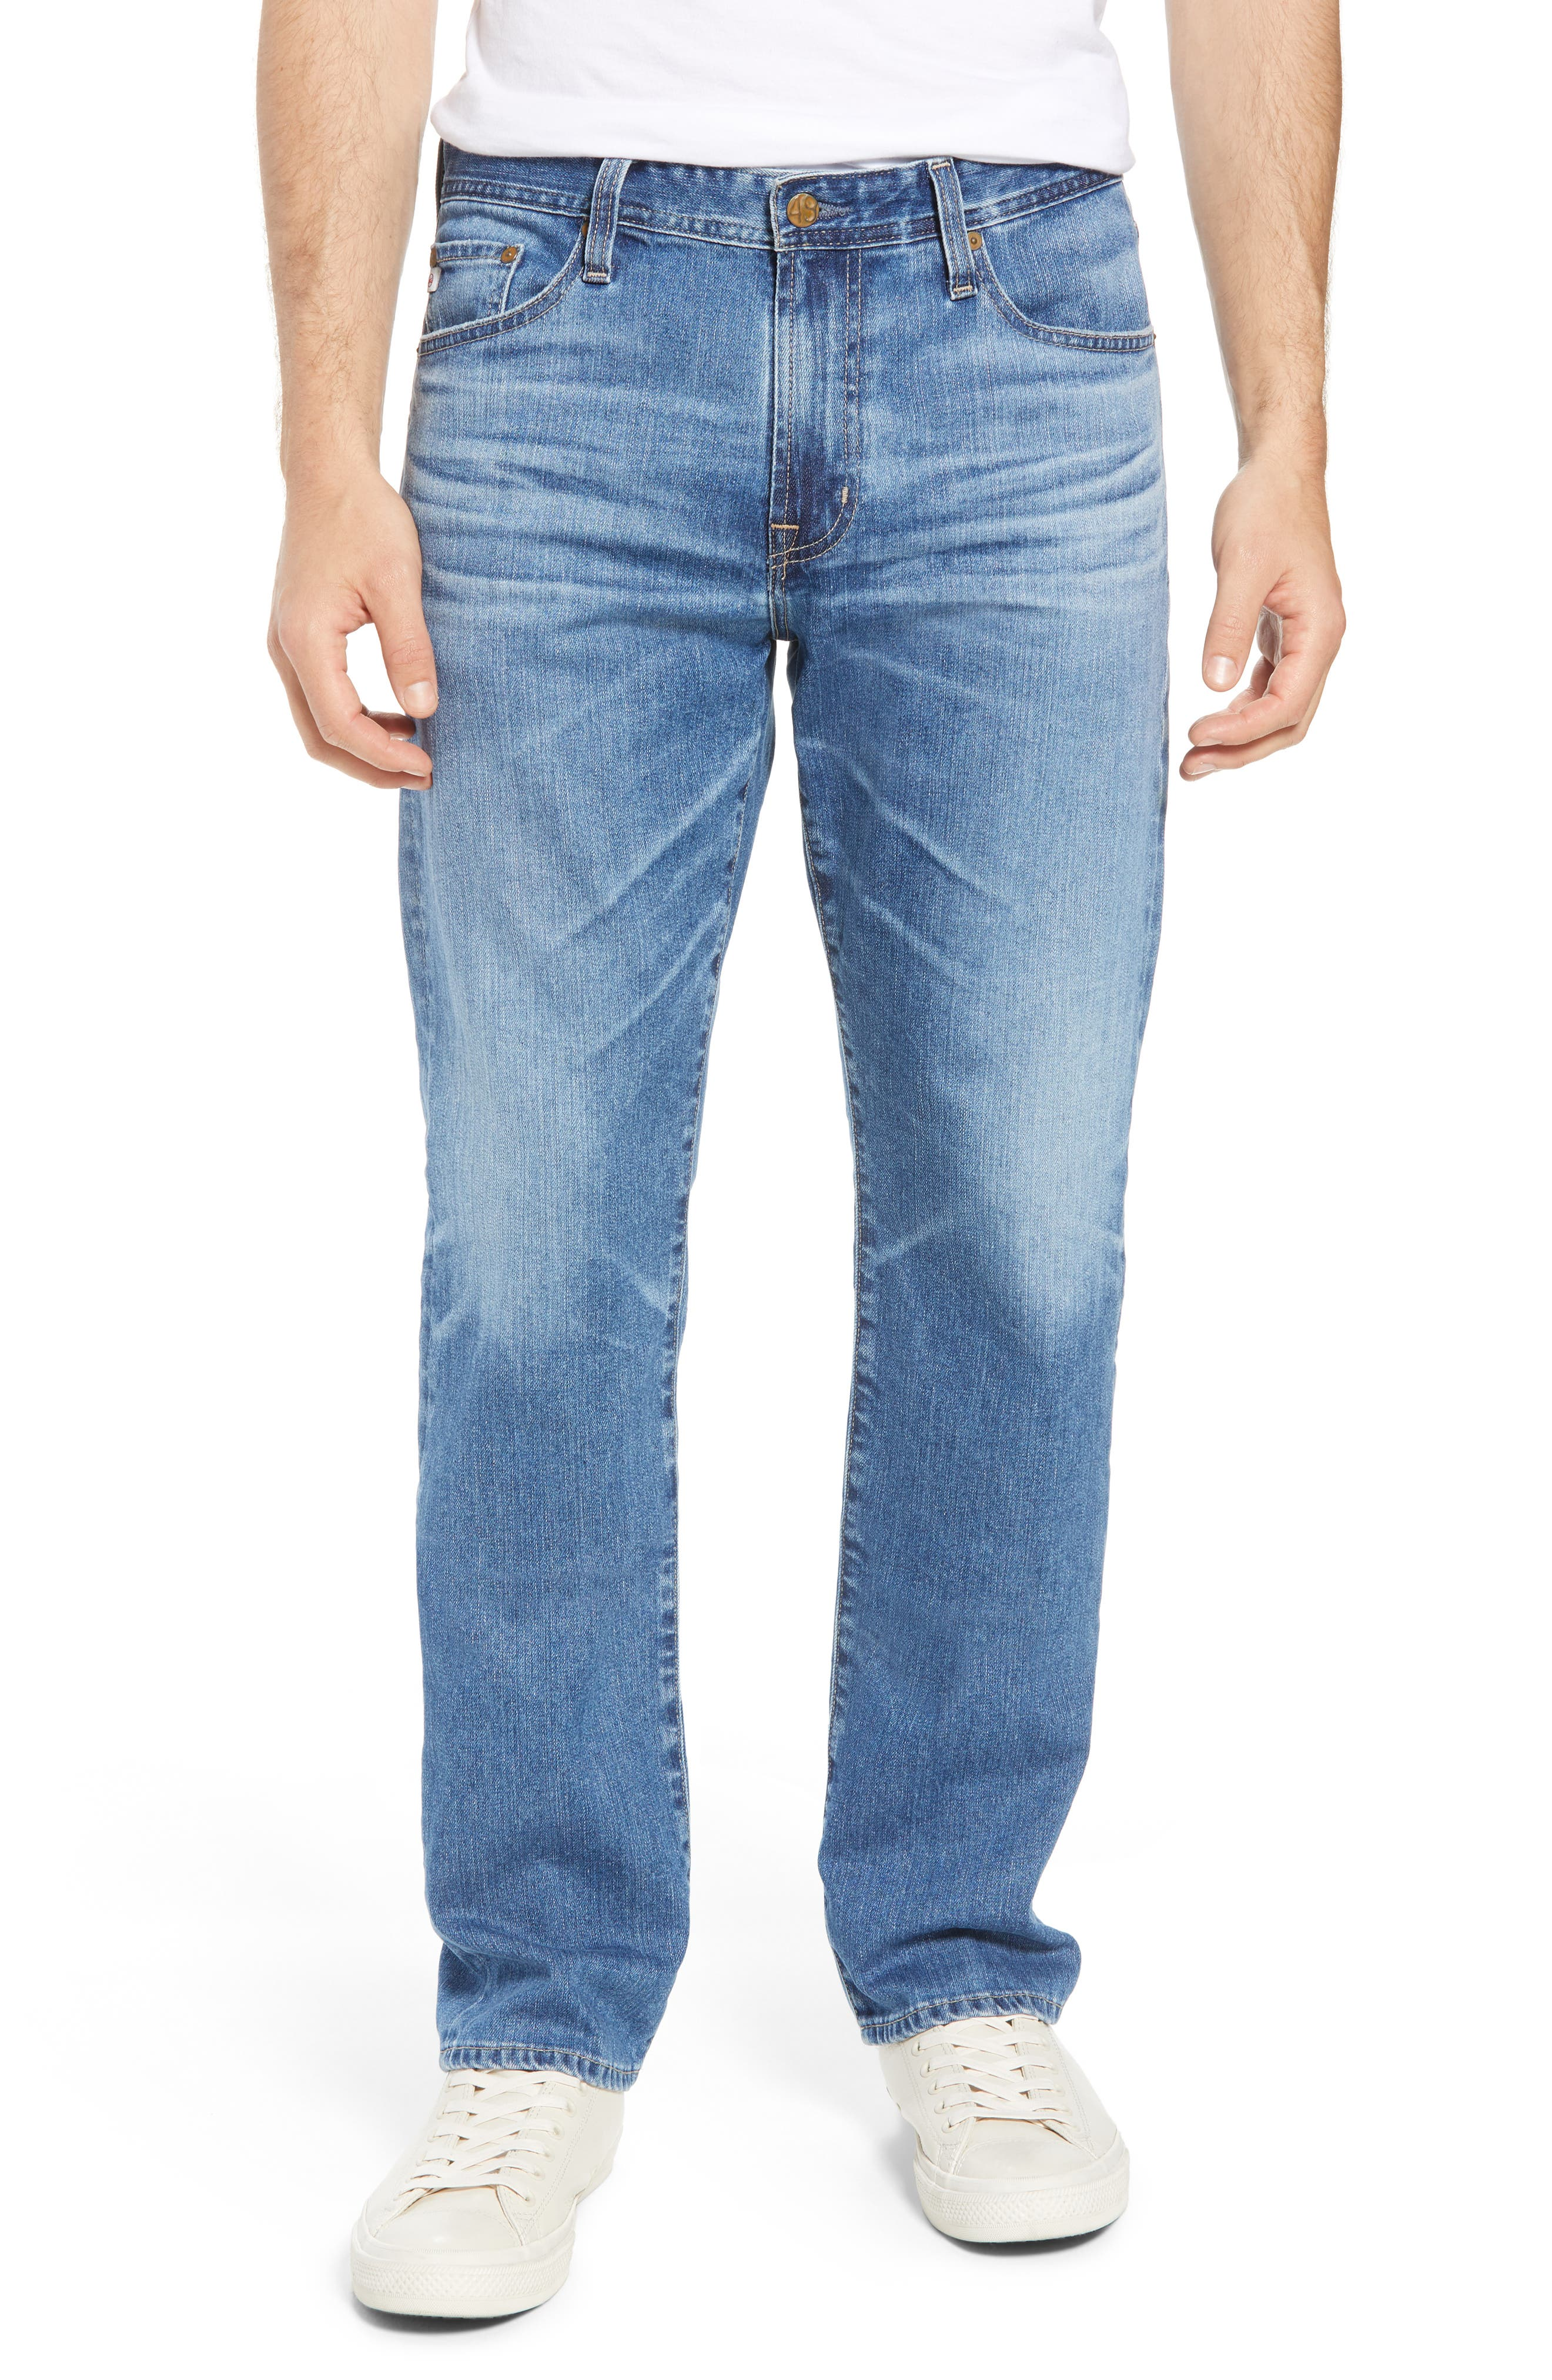 Everett Slim Straight Leg Jeans,                             Main thumbnail 1, color,                             15 YEARS OPEN ROAD